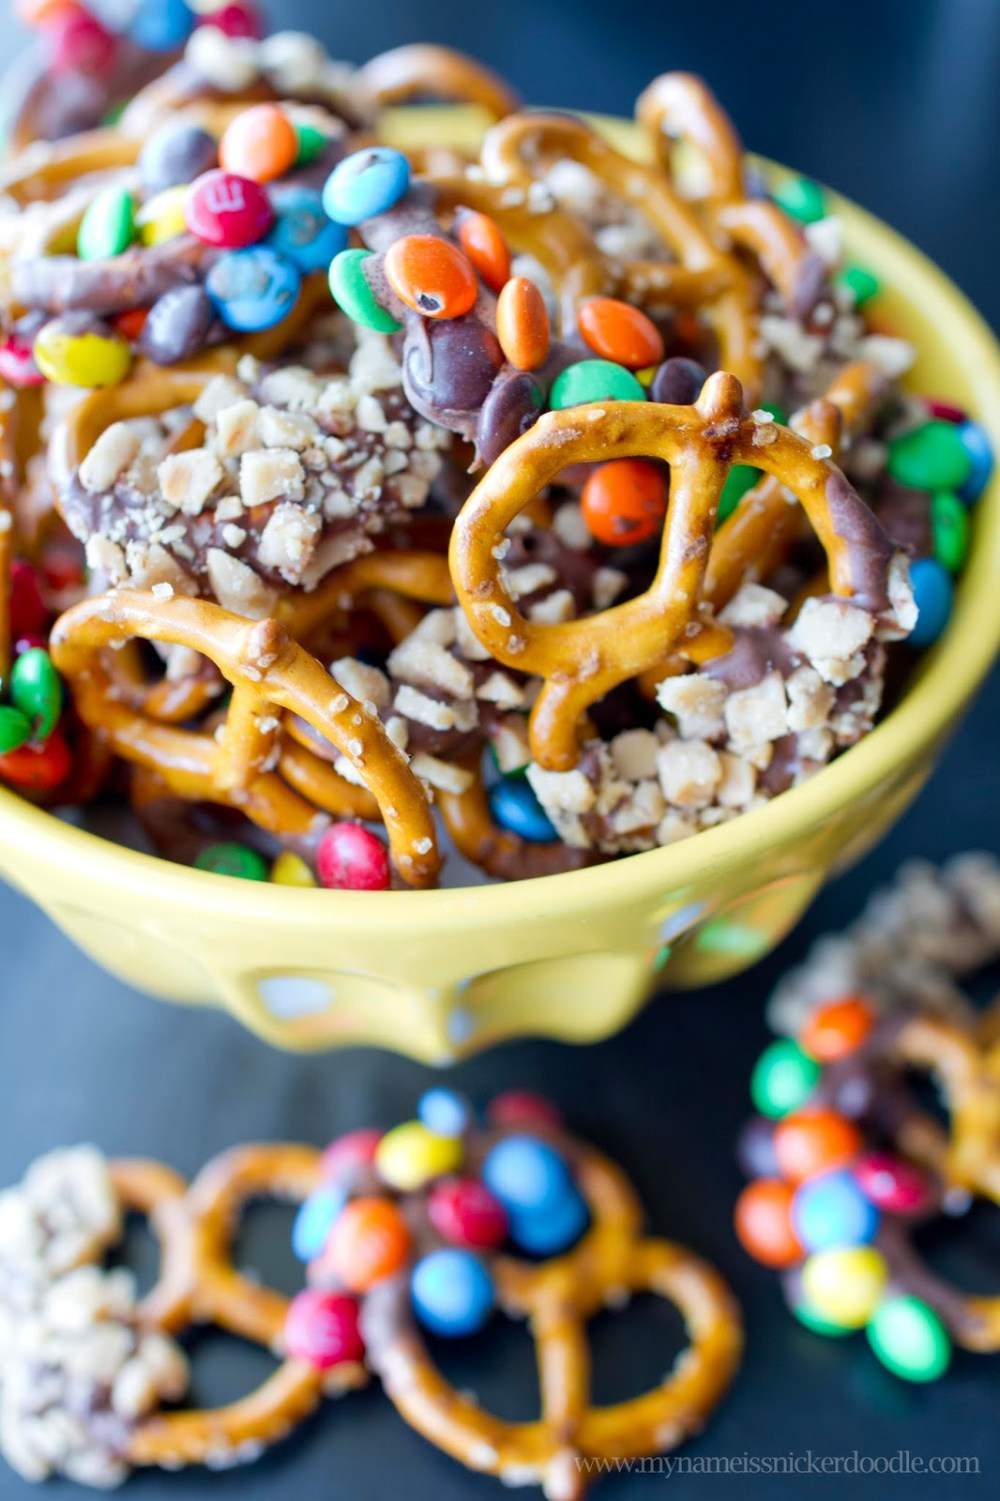 Chocolate and Candy Dipped Pretzels #FridayFinds